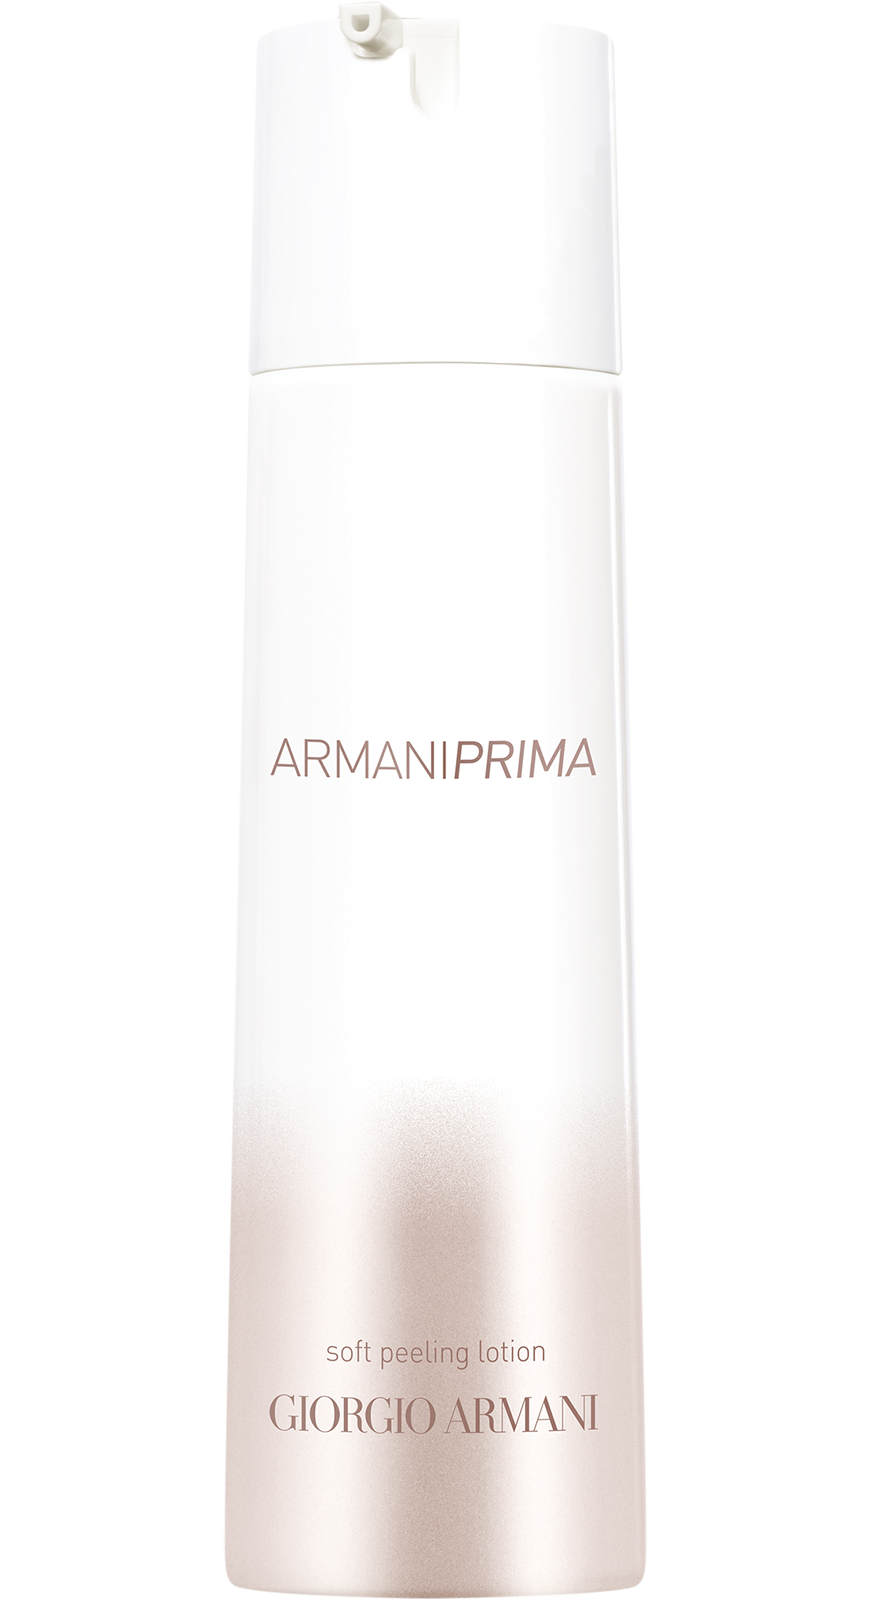 Prima Soft Peeling Lotion